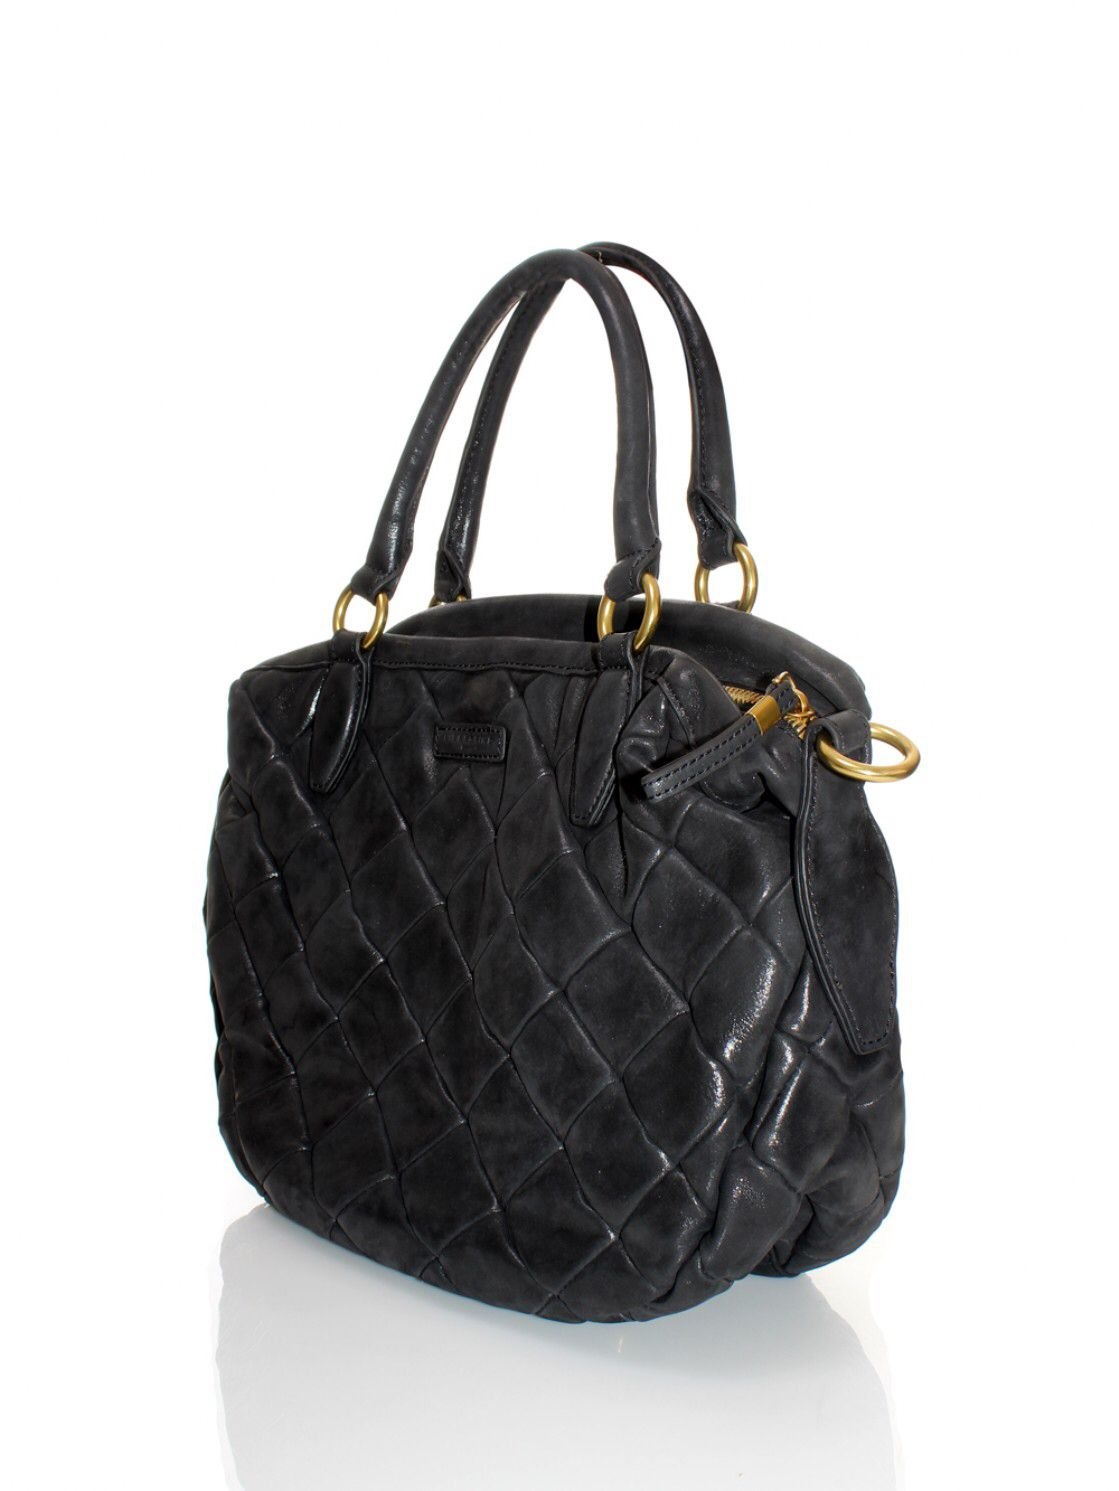 Image from http://www.orangebag.nl/cache/167429/1120_1491___/liebeskind%20bags%20shoulderbags%20and%20totes.jpg.